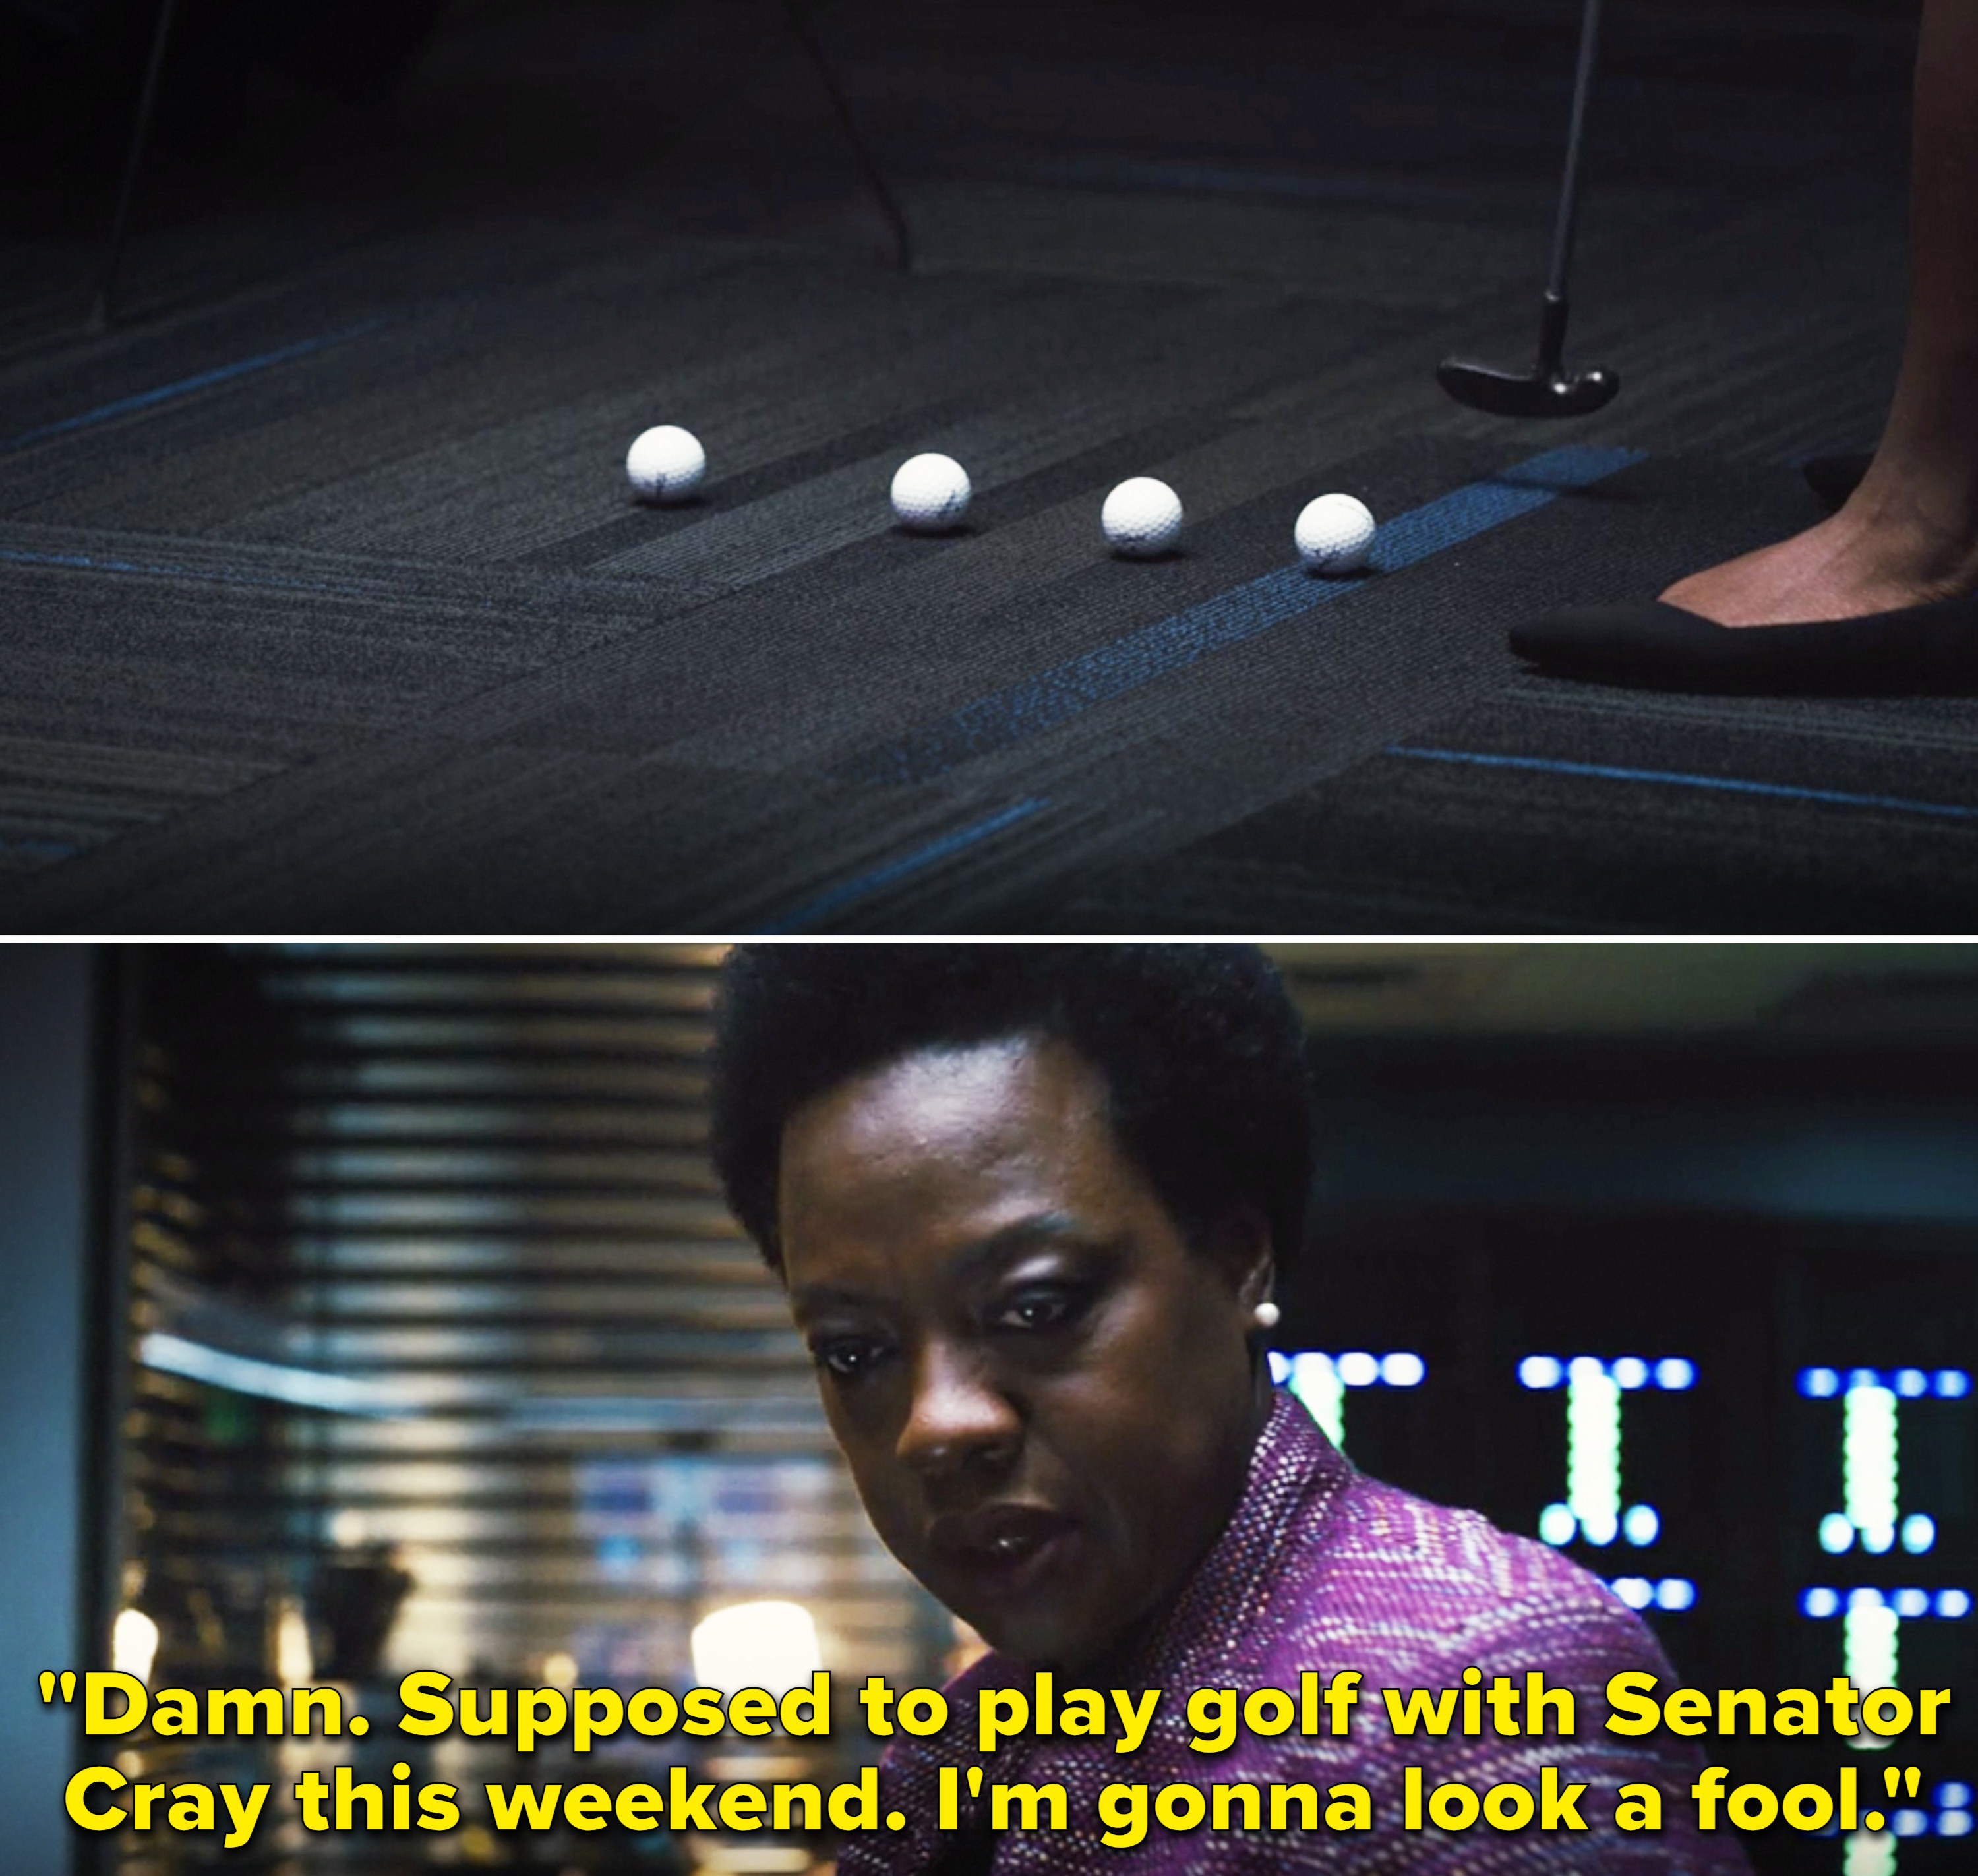 """Amanda saying, """"Damn. Supposed to play golf with Senator Cray this weekend. I'm gonna look a fool"""""""